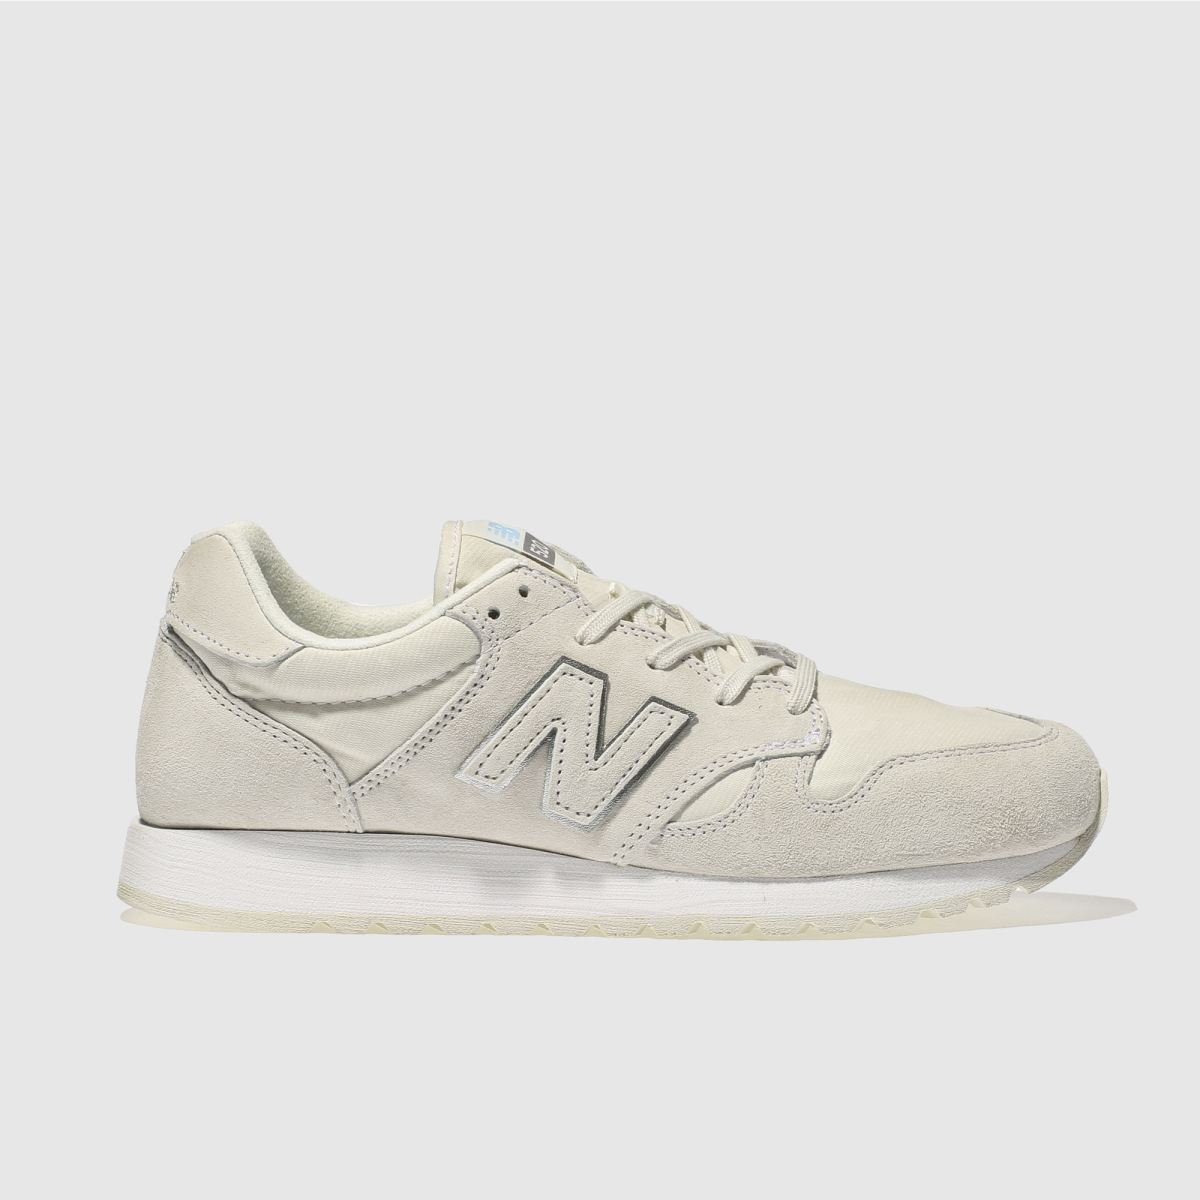 New Balance Natural 520 R Metallic Trainers